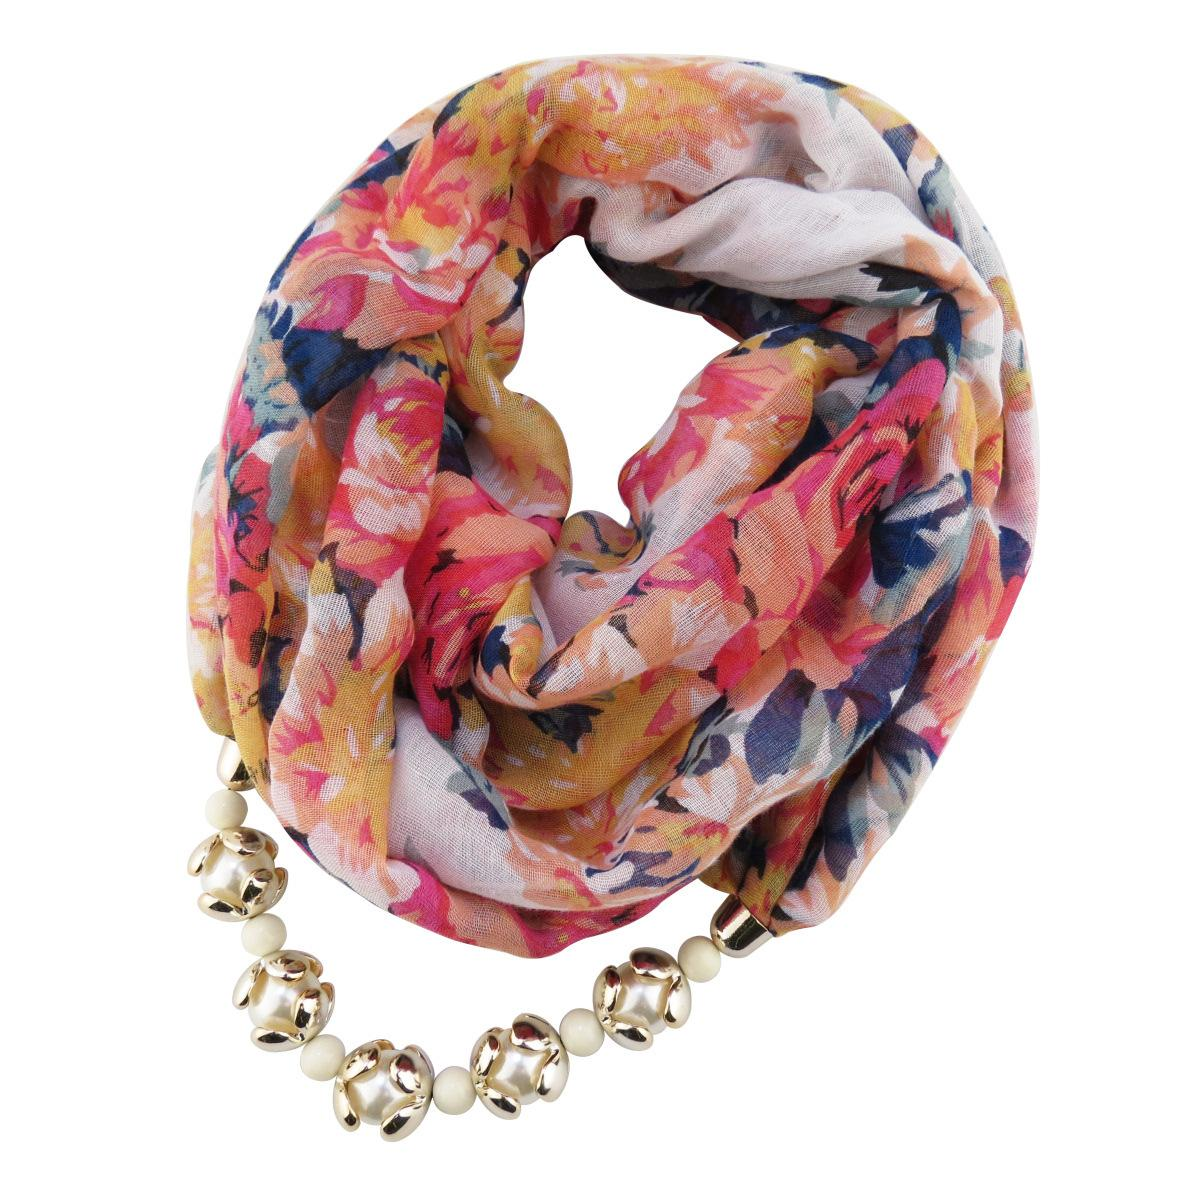 Lady flower printing pendant scarf 190cmx60cm voile necklace lady flower printing pendant scarf 190cmx60cm voile necklace pendeloque cut scarf maam scarf pendants heart jewelry factory cost wholesale scarves for sale aloadofball Image collections